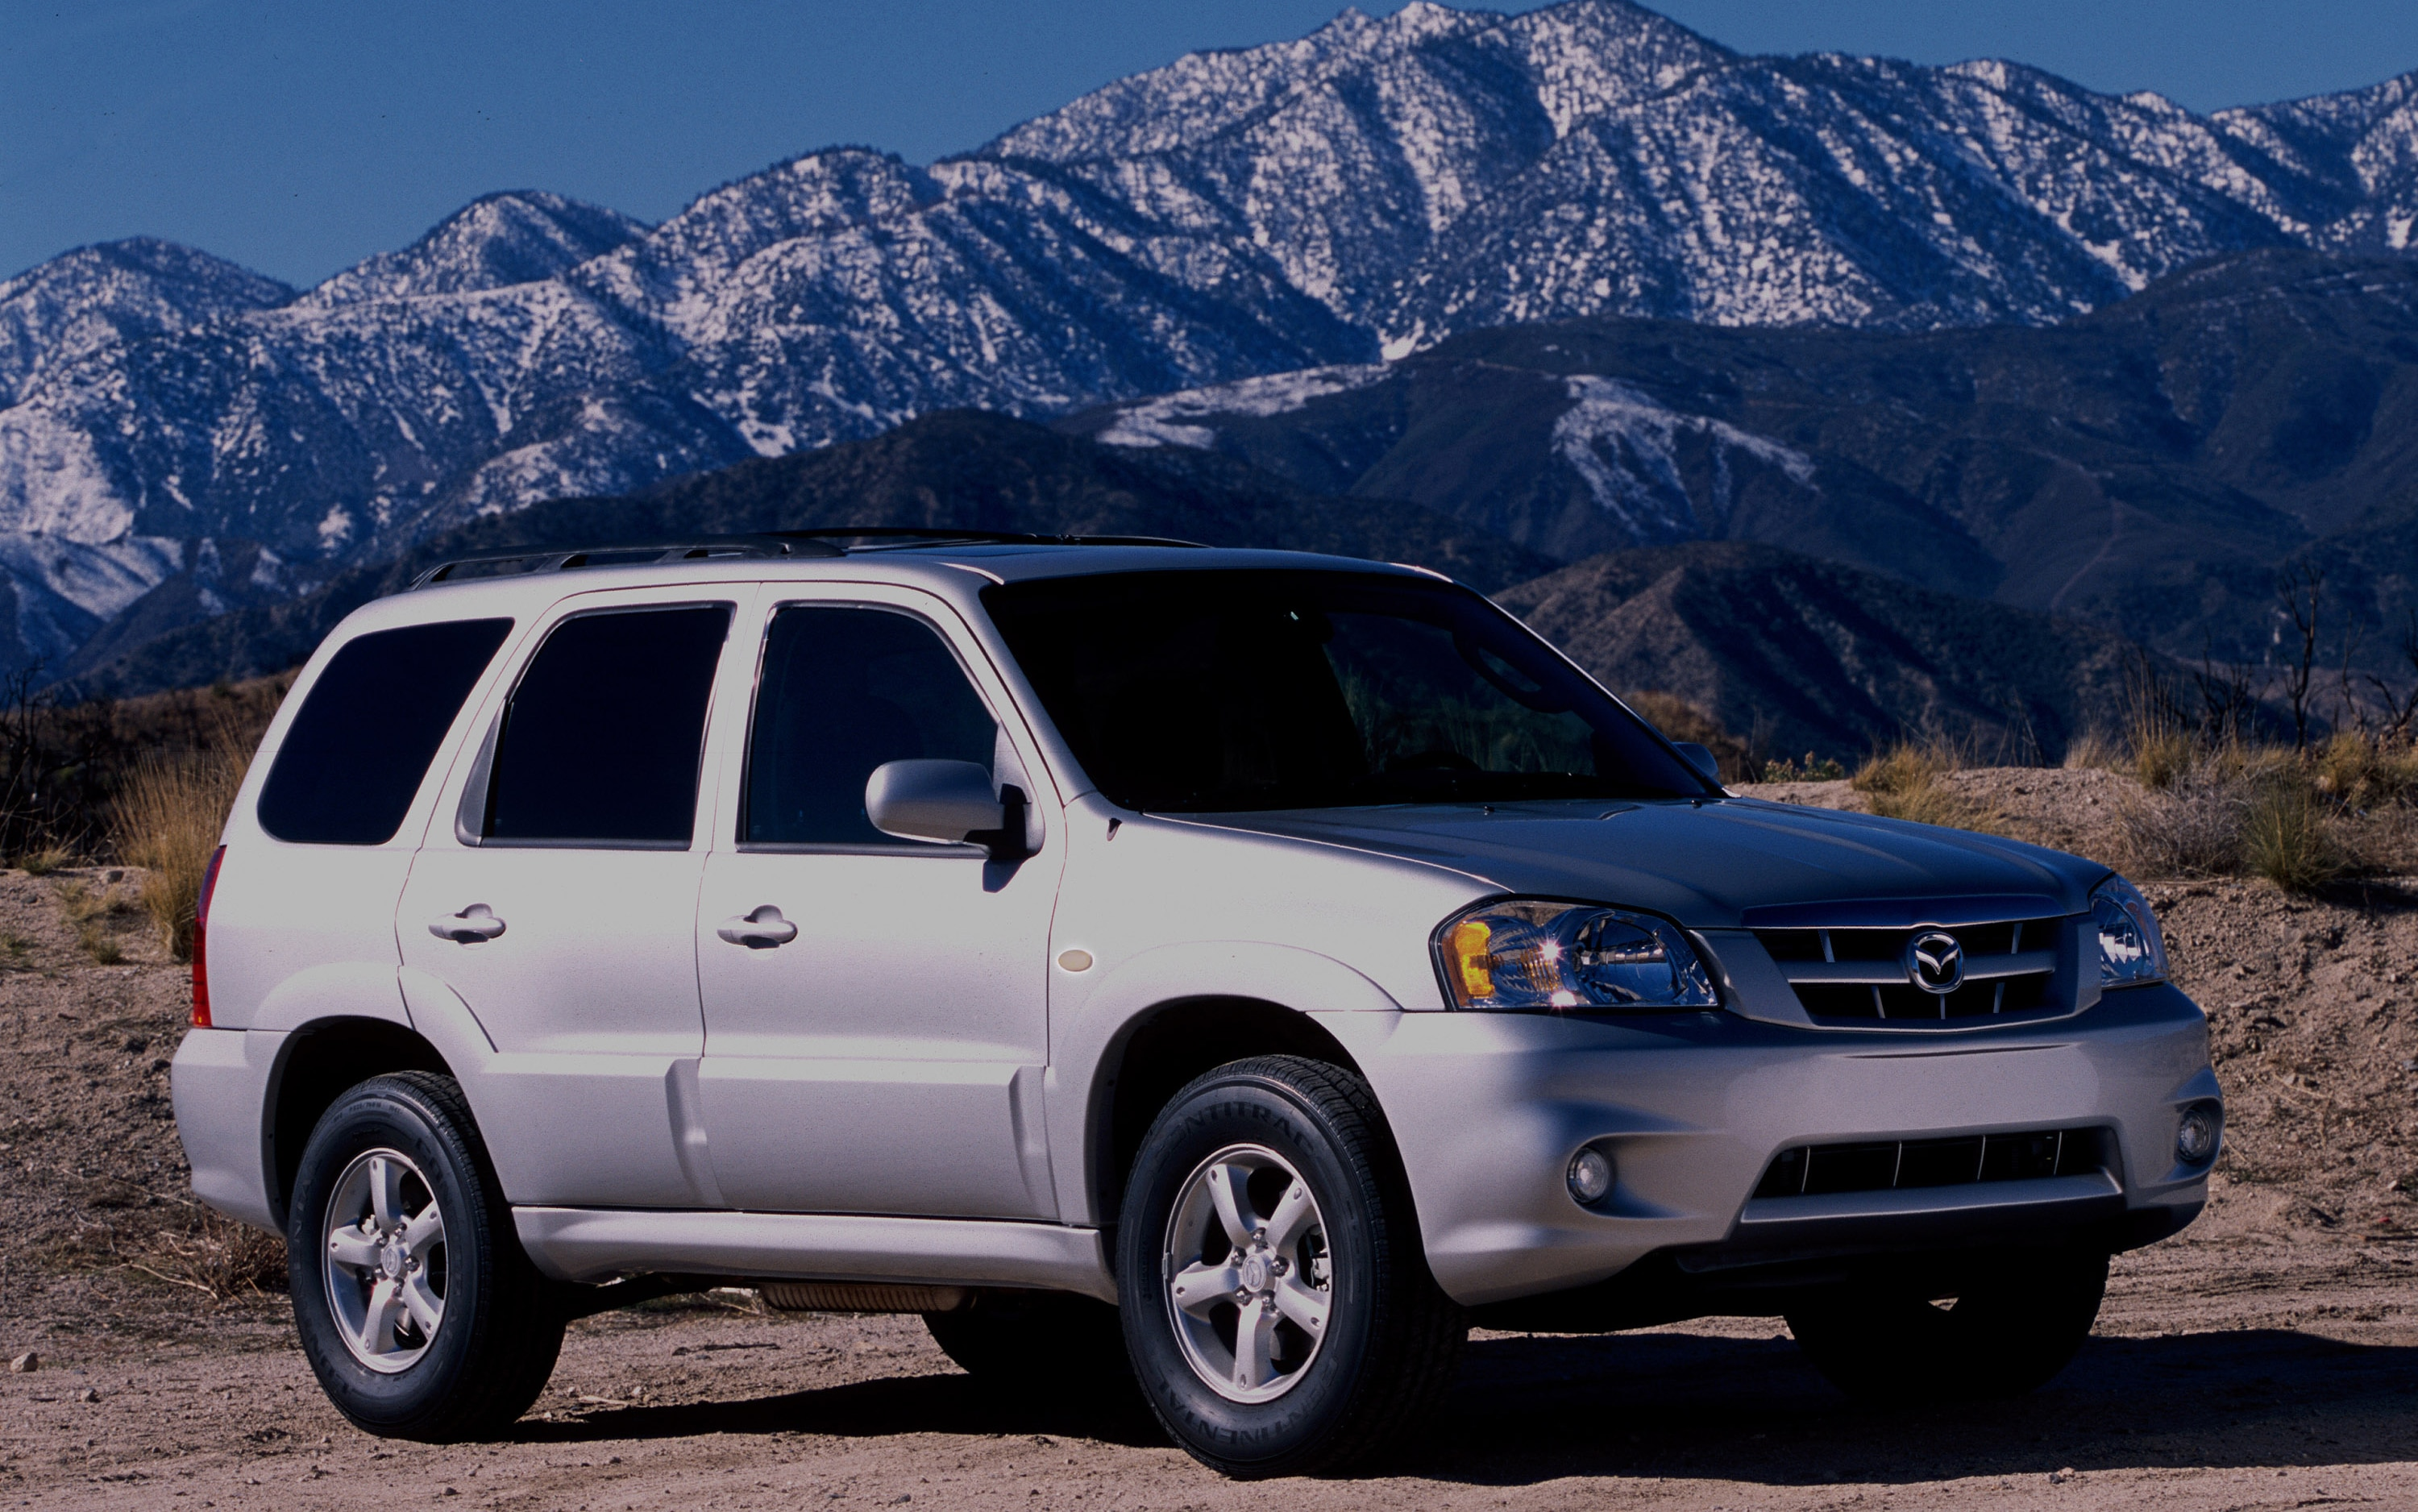 recall central 2001 2002 mazda tribute master cylinder leaks could cause fire. Black Bedroom Furniture Sets. Home Design Ideas